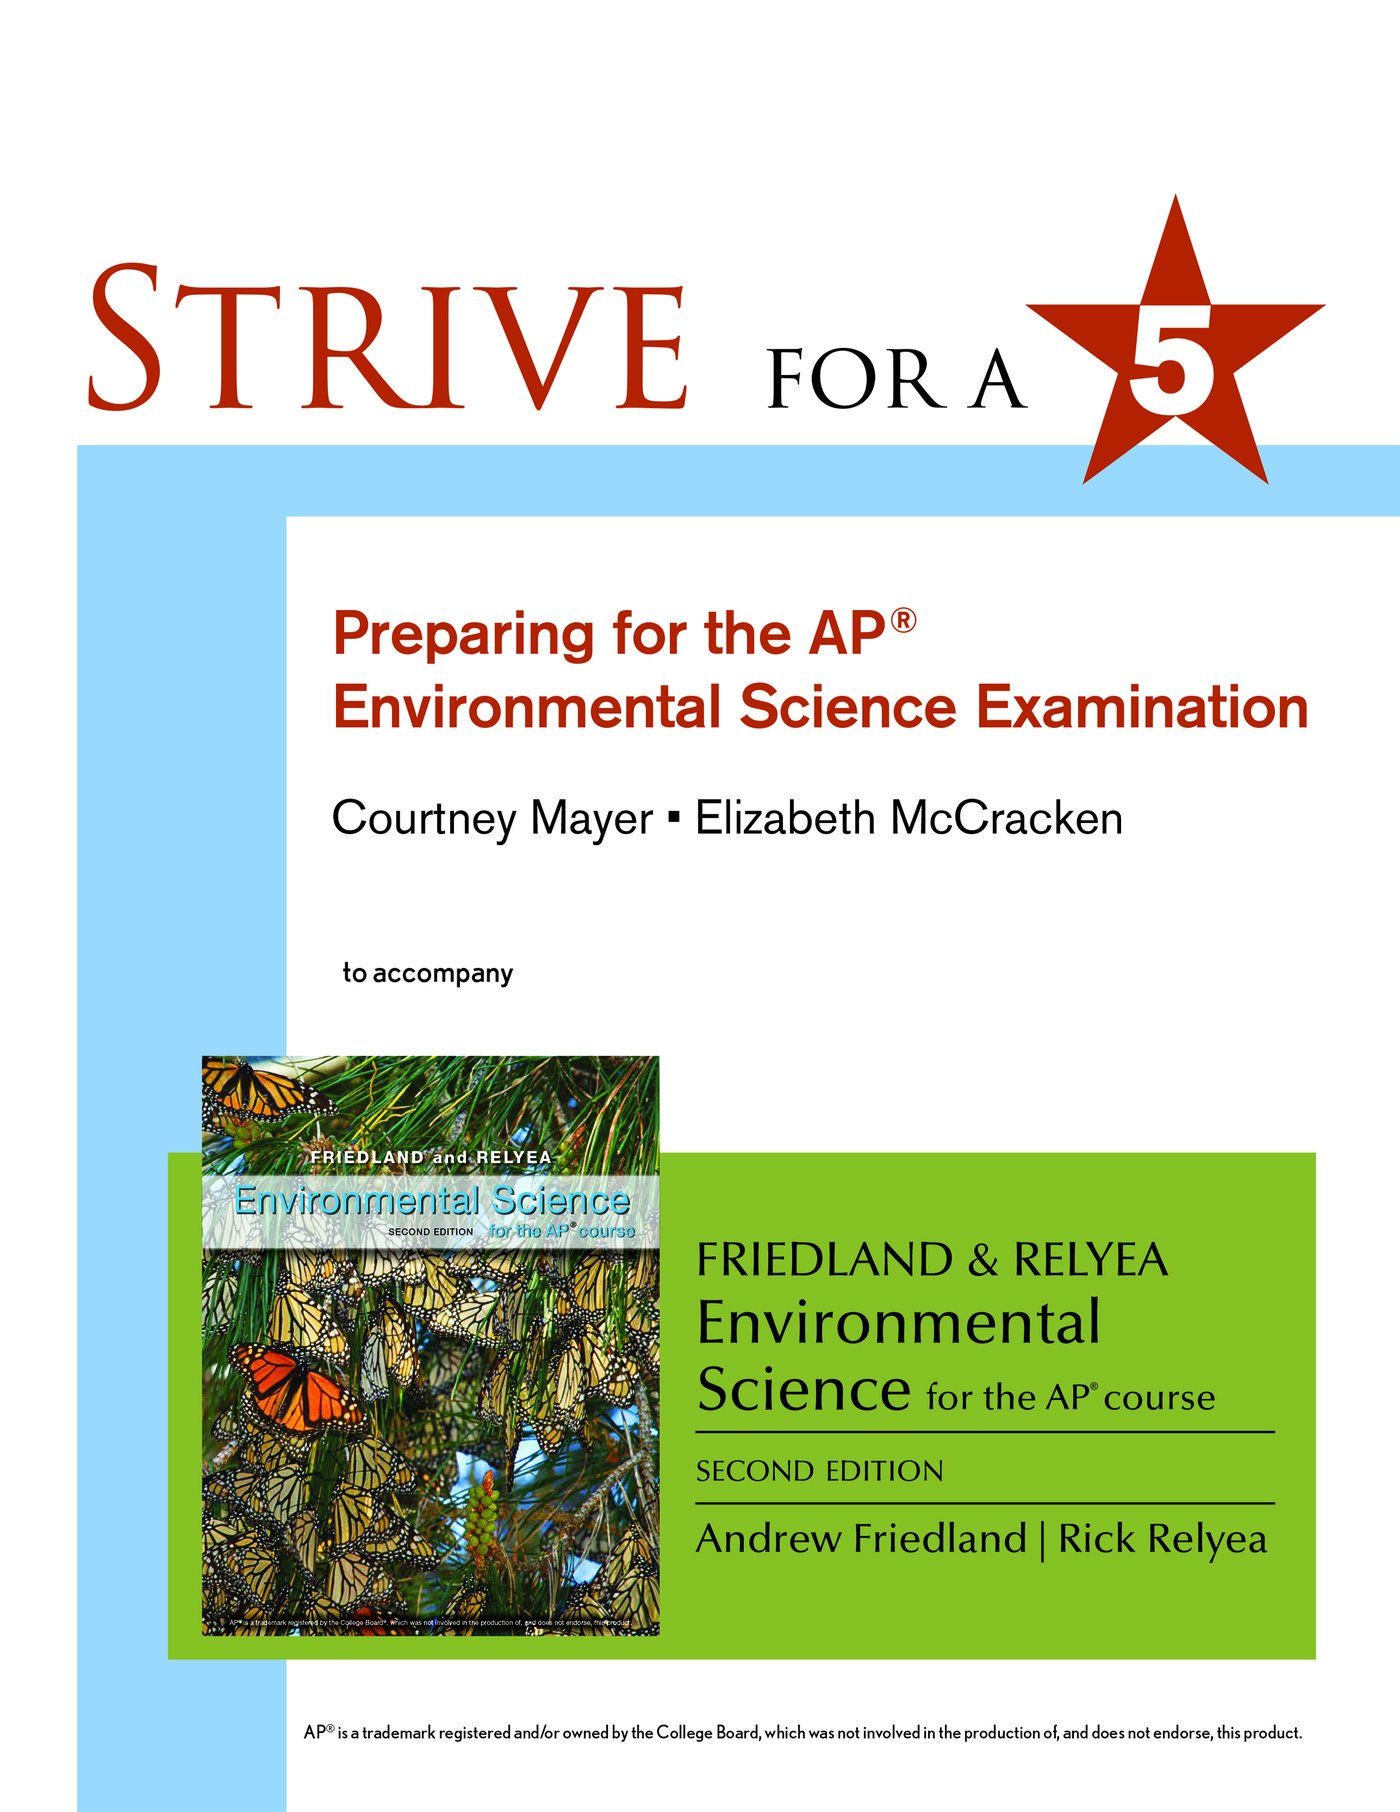 Strive for 5: Preparing for the AP® Environmental Science Exam by W. H. Freeman